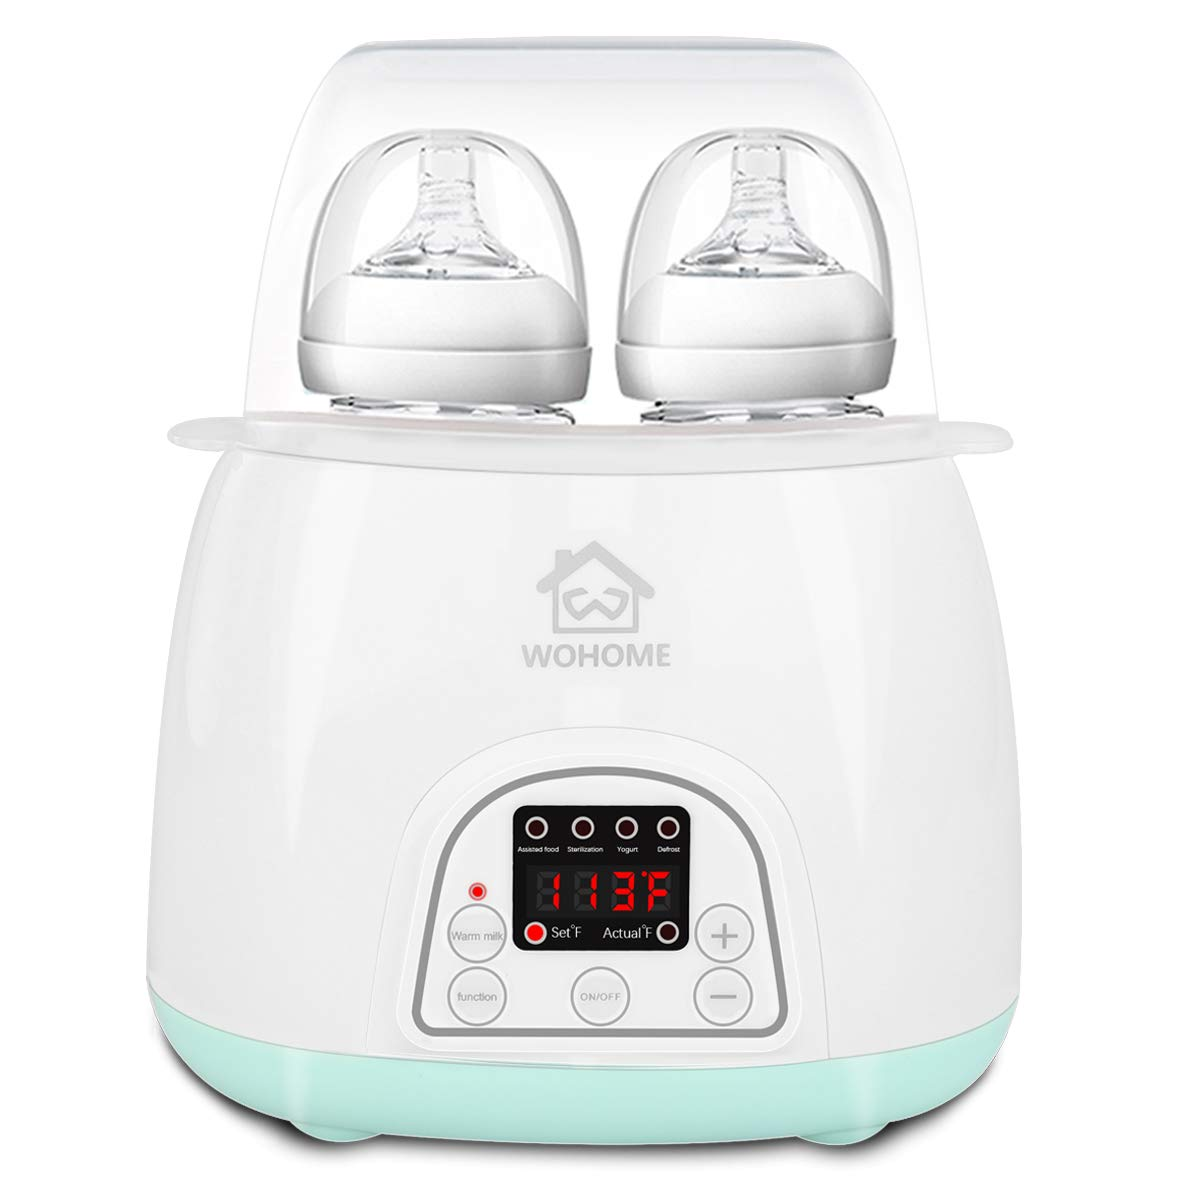 Bottle Warmer Sterilizer, WOHOME 5-in-1 Baby Bottle Warmer with Rapid Heating Warm Milk Formula Heat Food Defrost, LED Display and Accurate Temperature Control, White by WOHOME